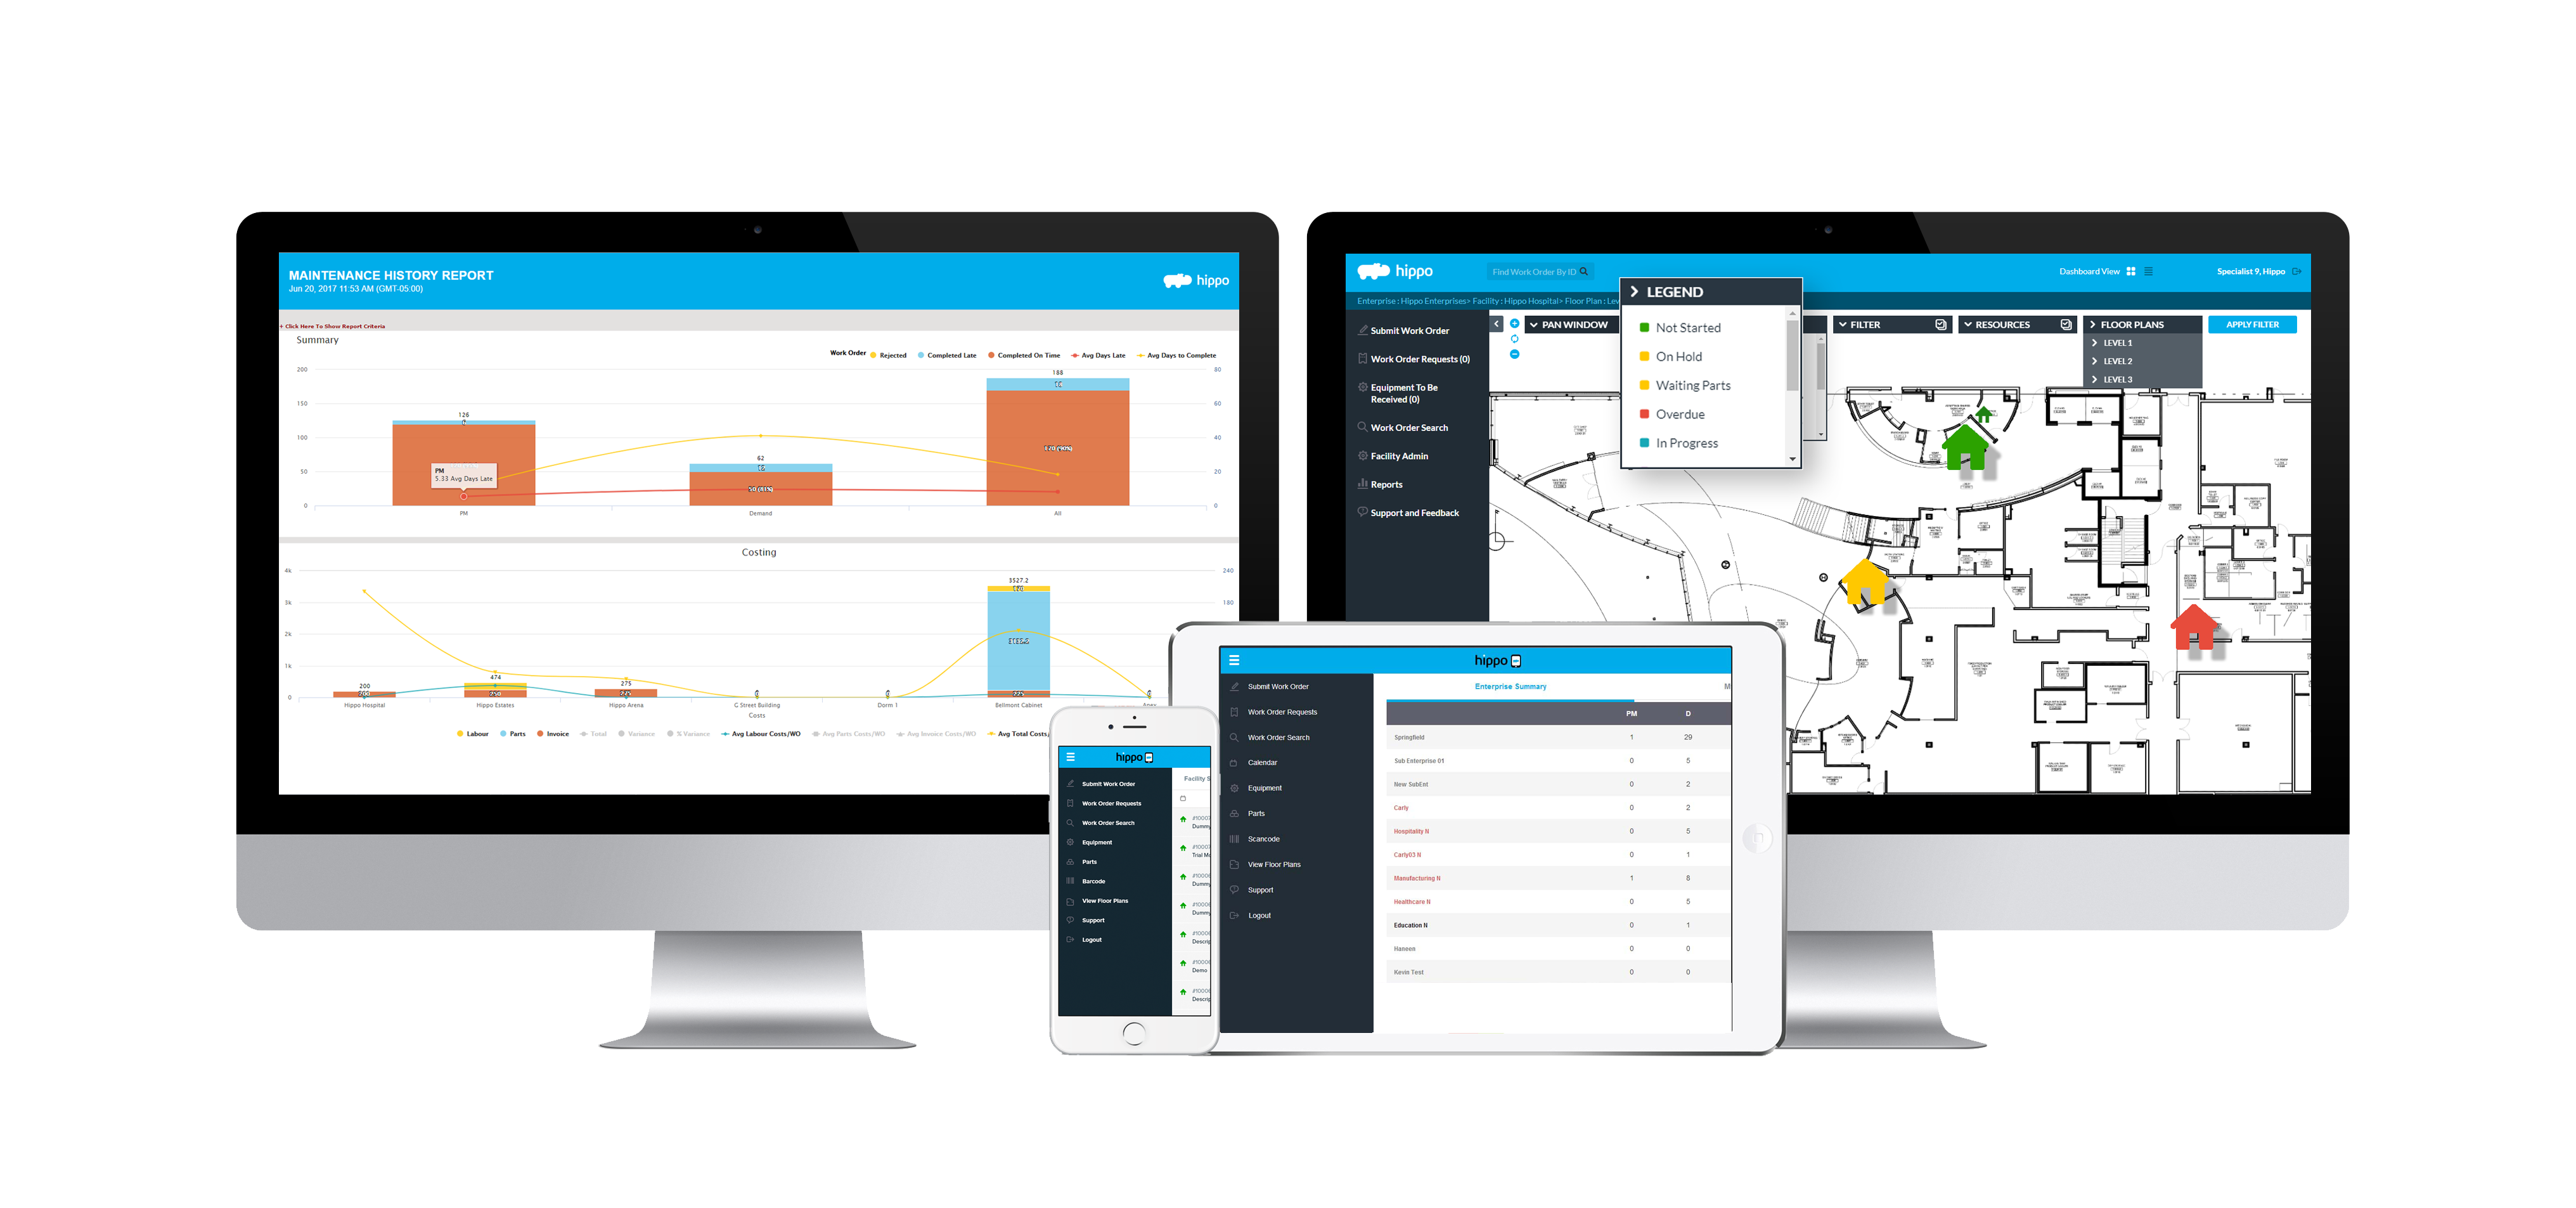 Hippo CMMS Software - Simple User Interface